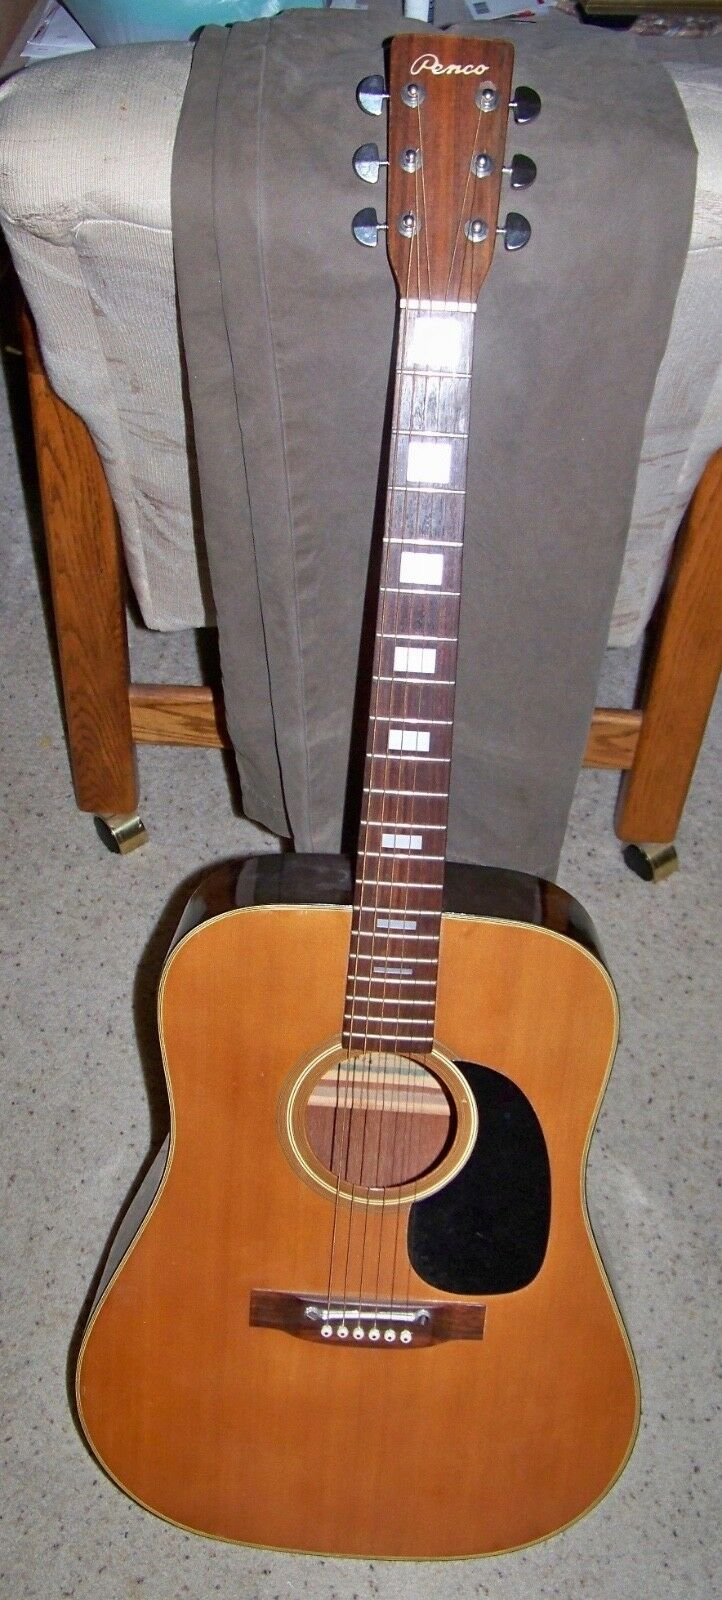 1970's Penco Full Größe Acoustic Guitar Vintage Japan